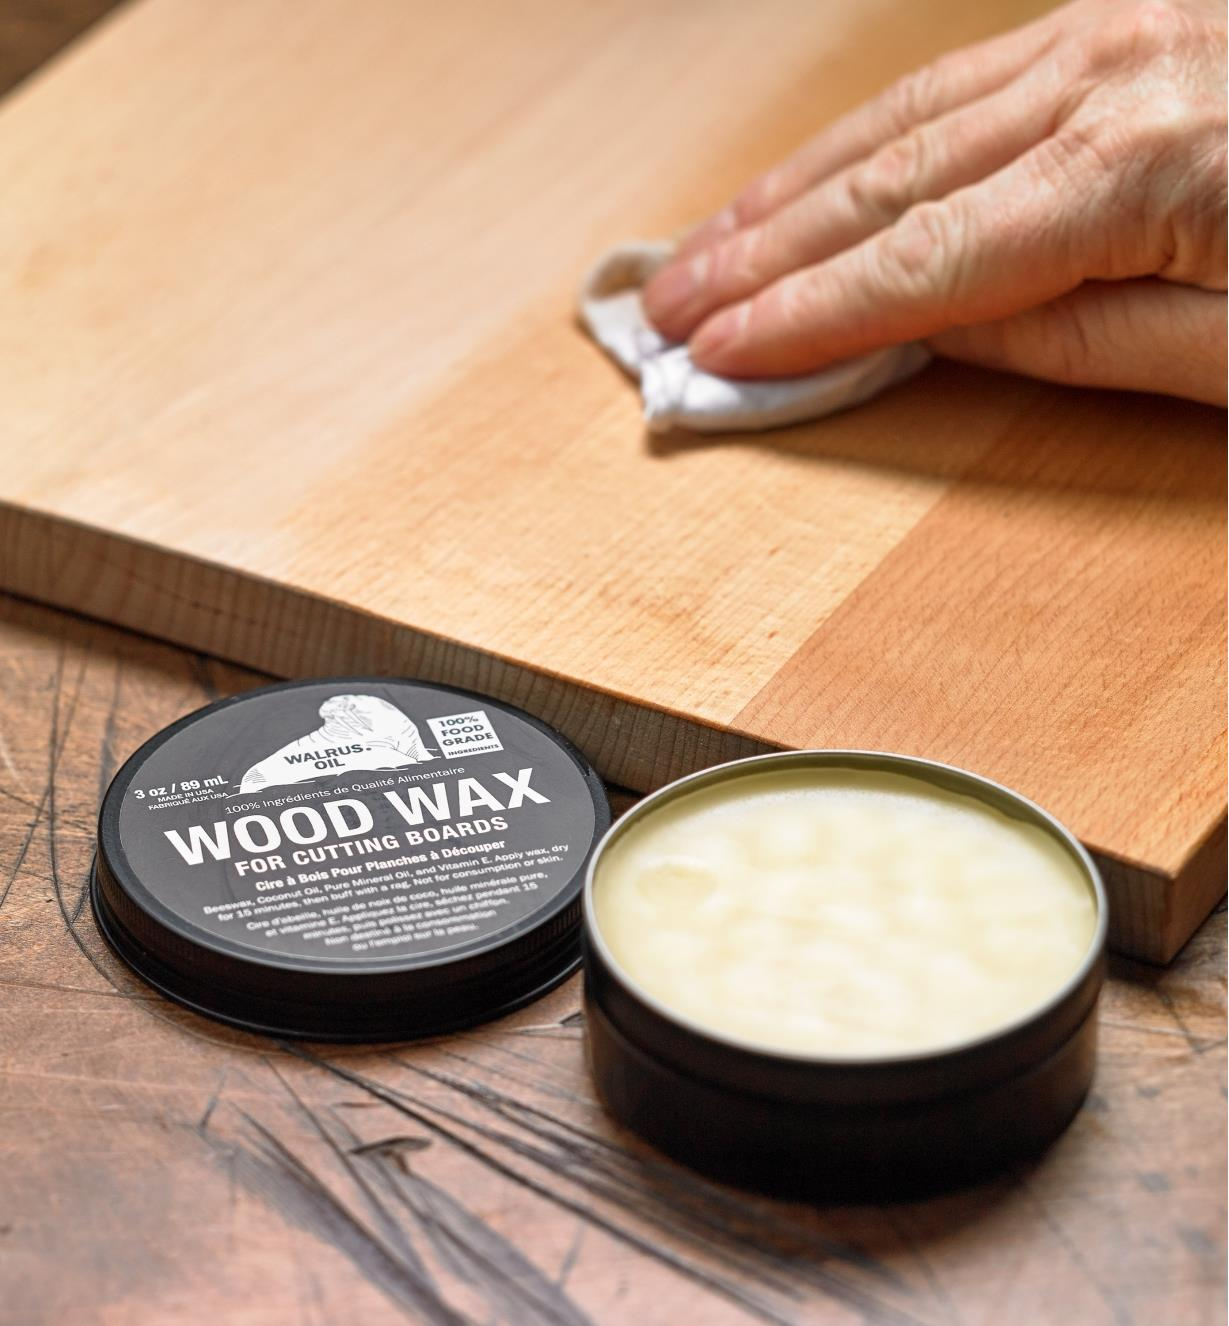 Applying Walrus Oil cutting-board wax to the unfinished surface of a newly made wooden cutting board